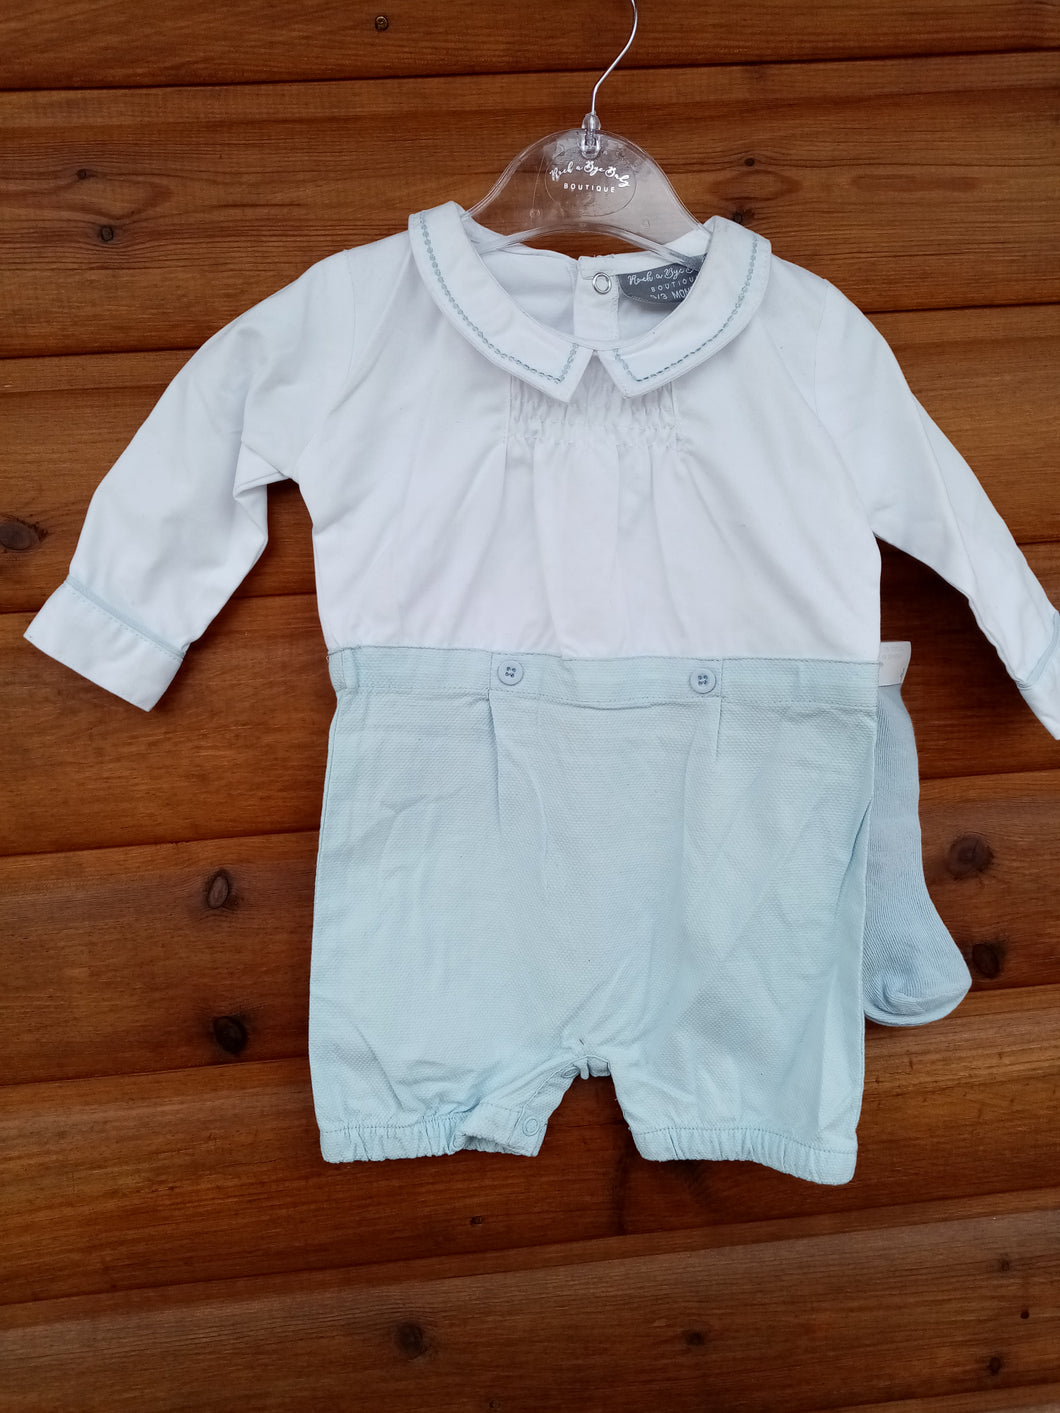 white and light blue set with socks